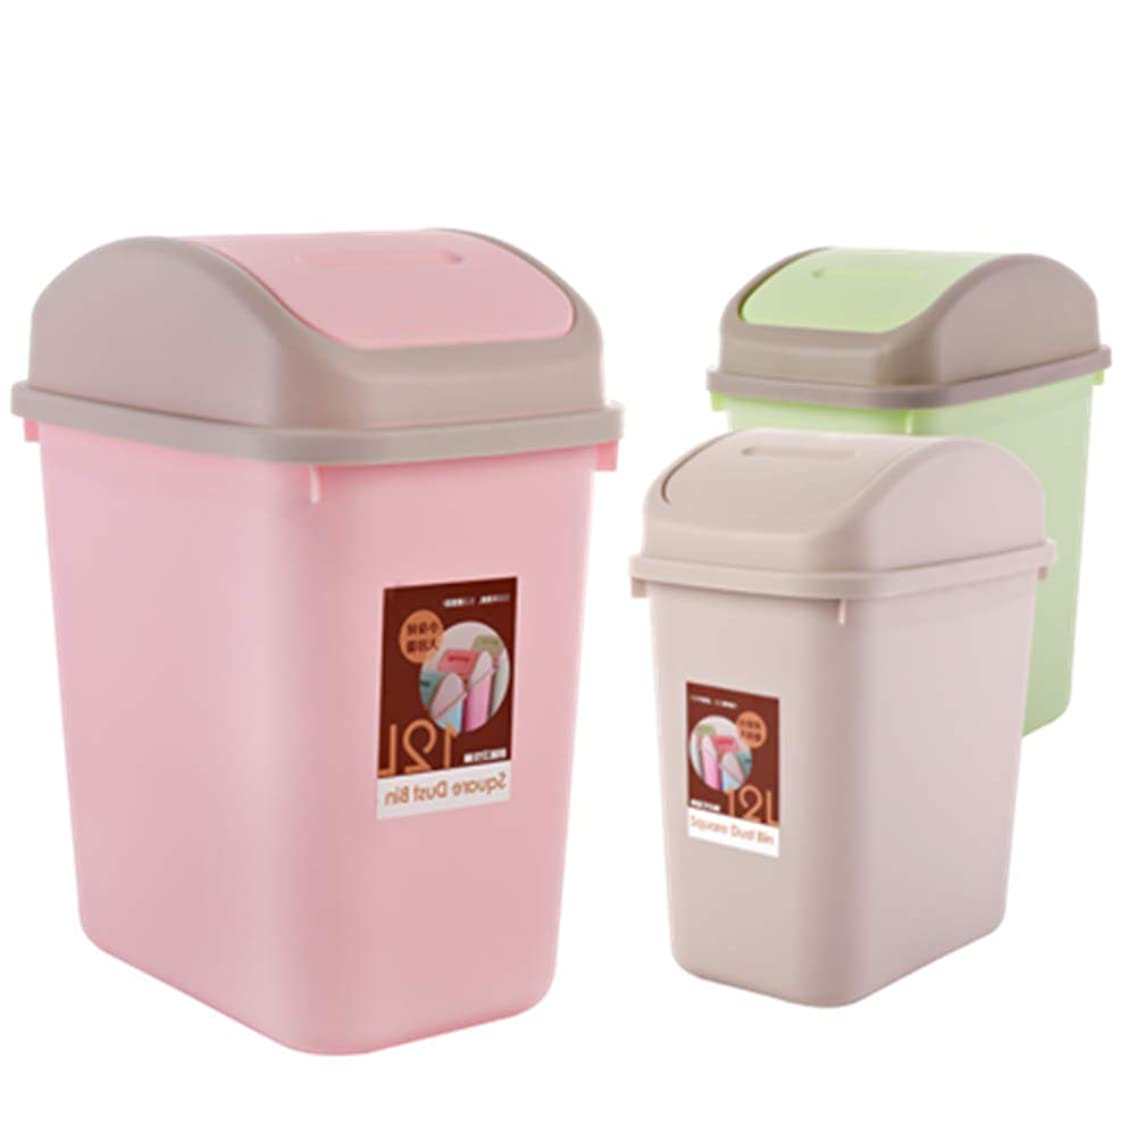 Bathroom Trash Can with Lid Toilet Household Press Trash Can with Lid Home Living Room